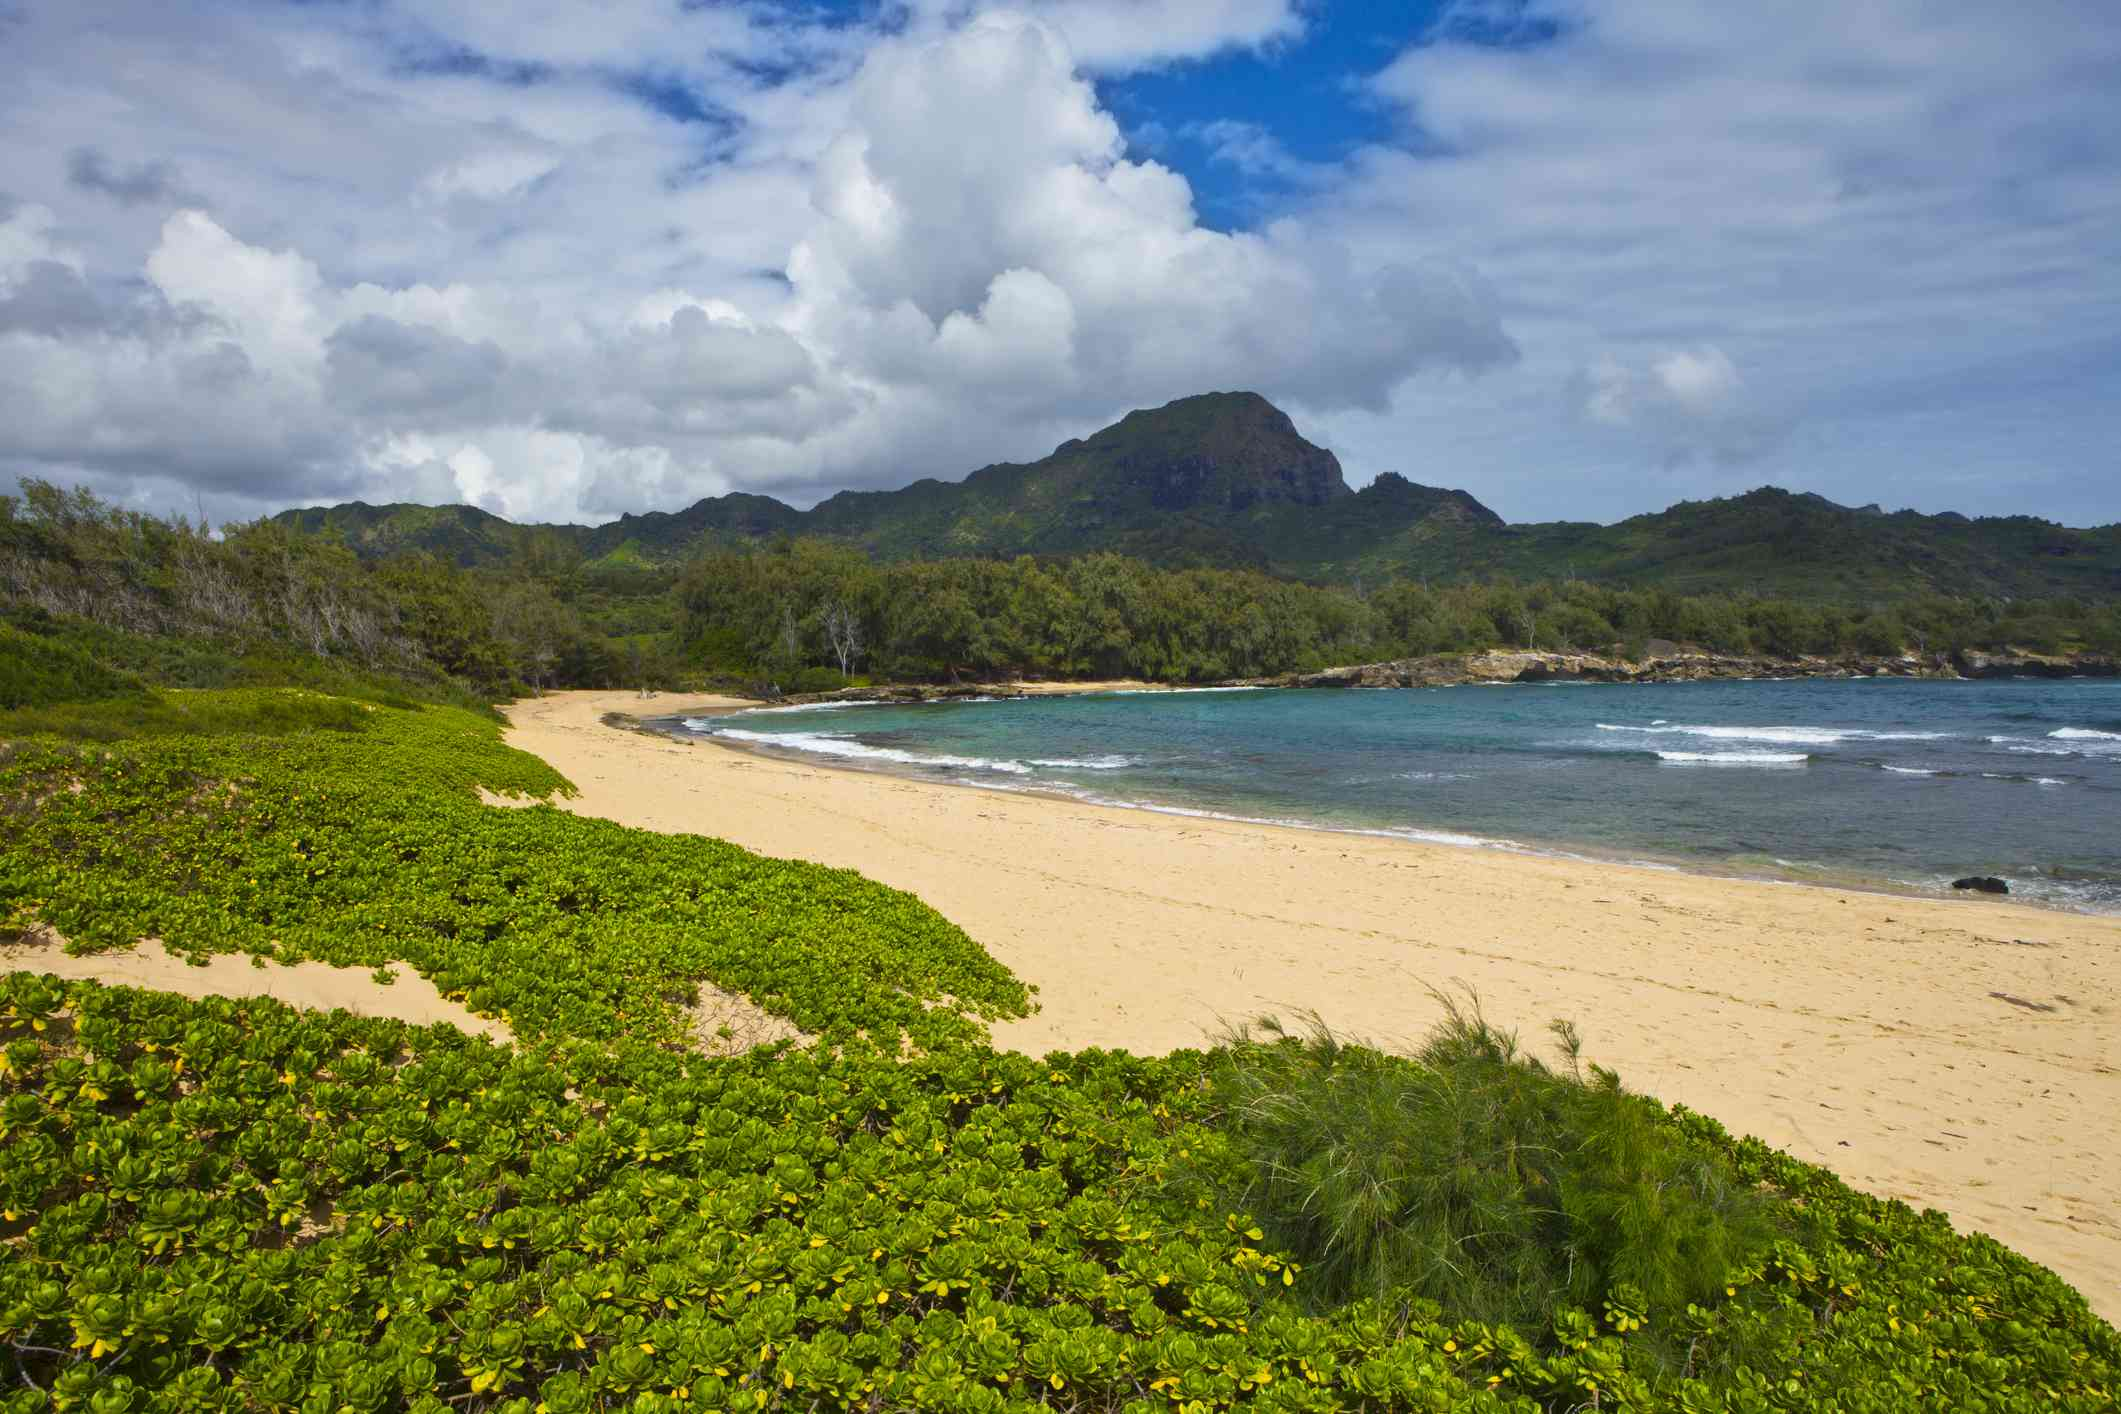 lush green foliage, clean sand, and blue water at Mahaulepu Beach, Kauai, with mountains, blue sky, and white, fluffy clouds in the distance